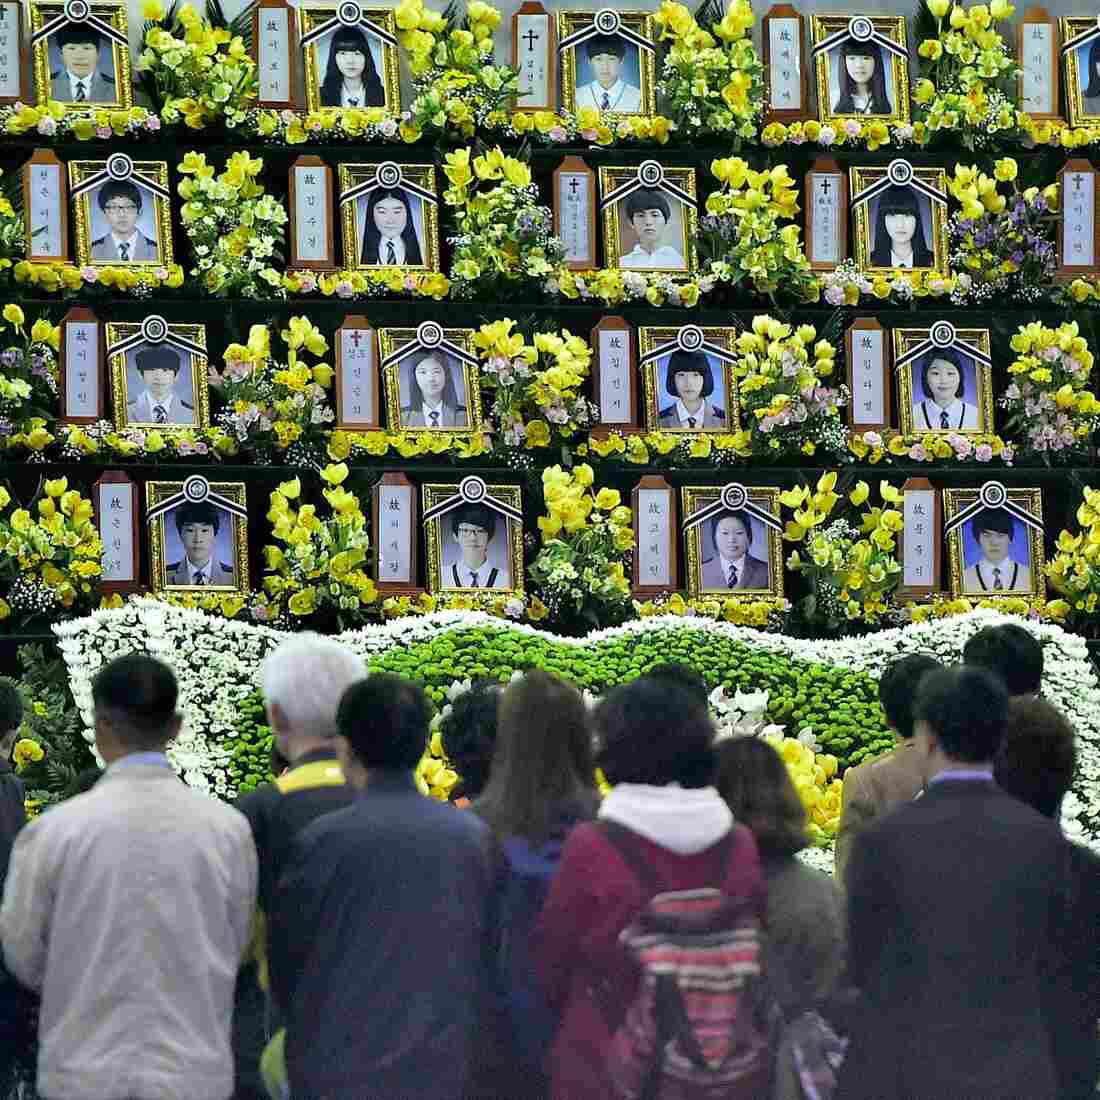 South Korean President Promises To Raise Sewol Ferry, One Year After Tragedy